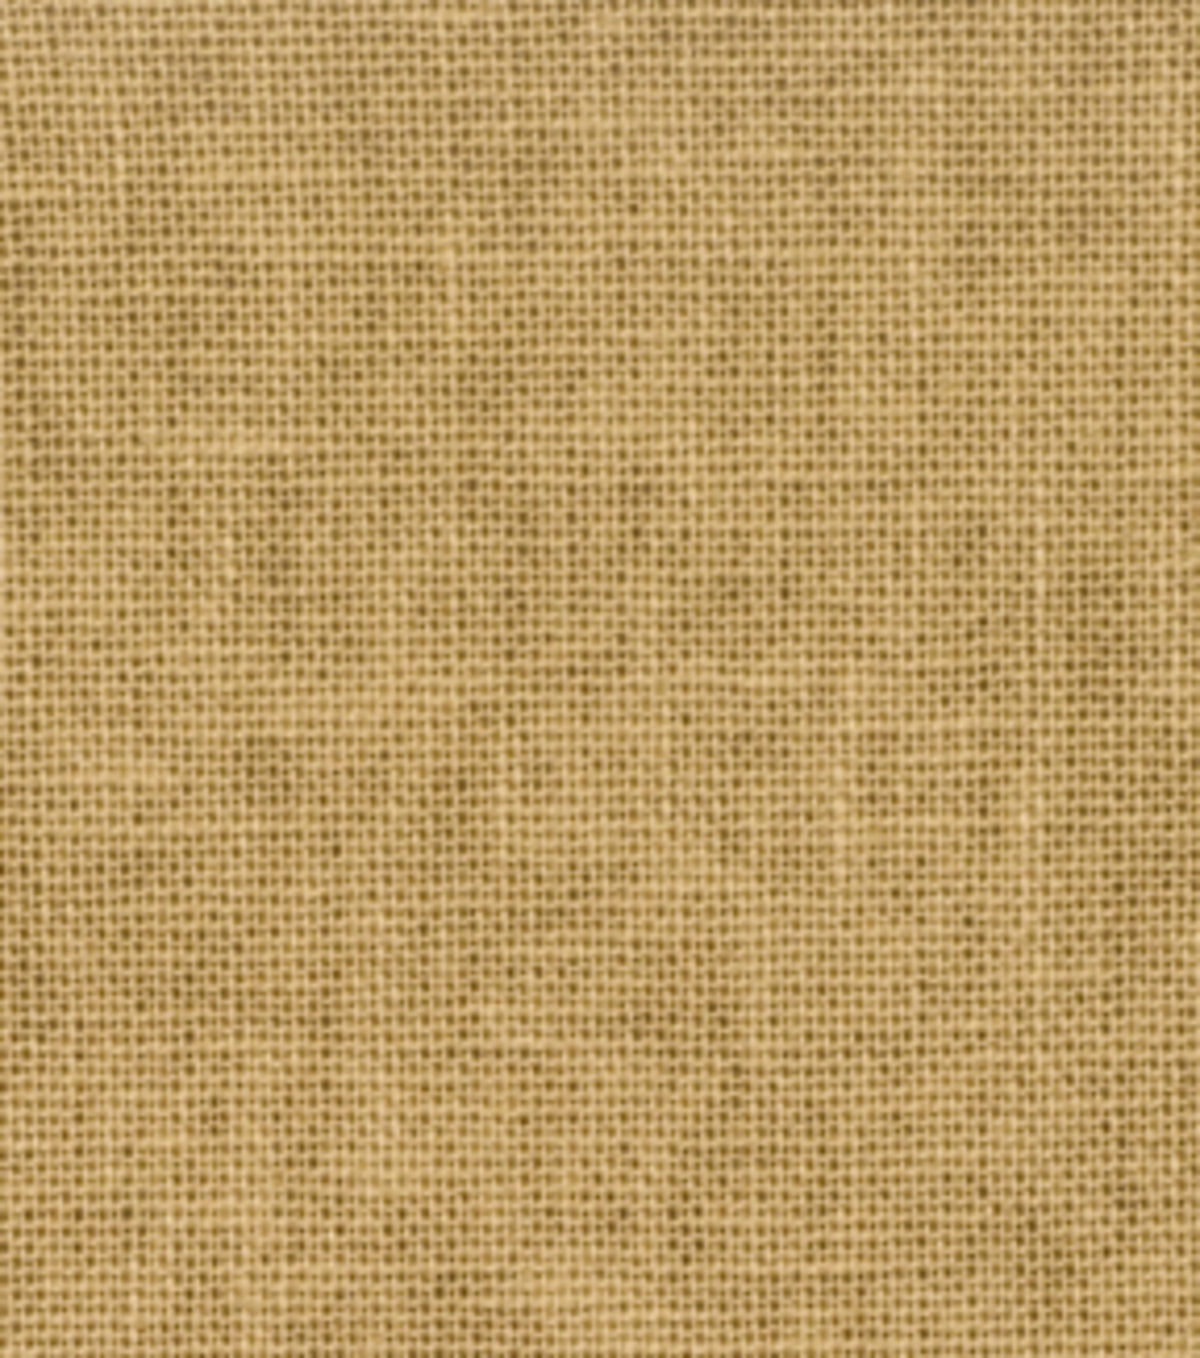 Home Decor 8\u0022x8\u0022 Fabric Swatch-Jaclyn Smith Jigsaw-Chamois